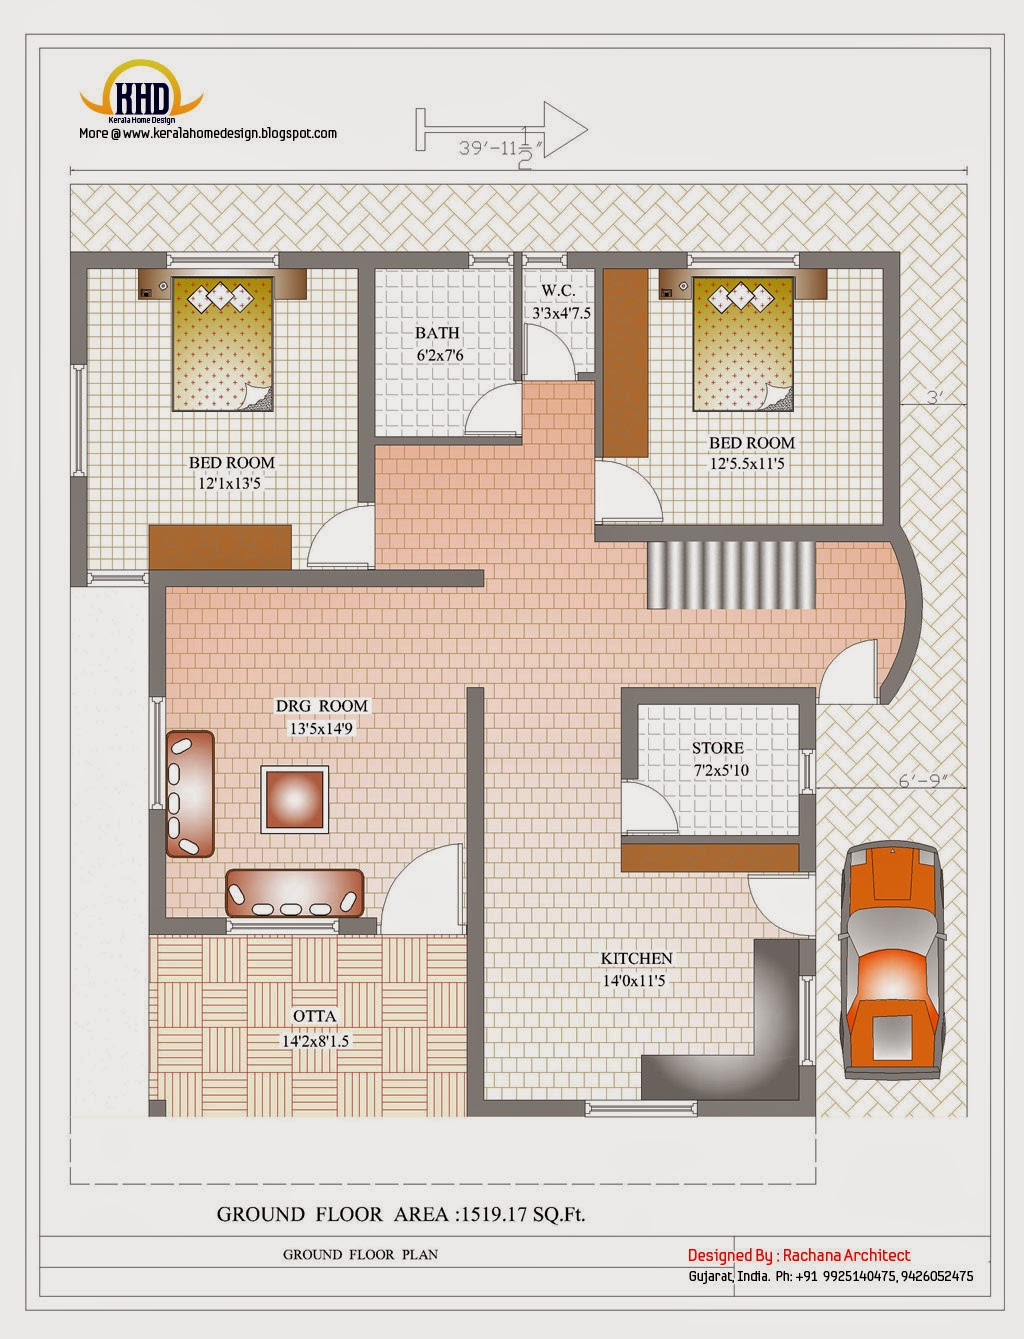 Duplex house plans indian style 28 images duplex house Duplex house plans indian style